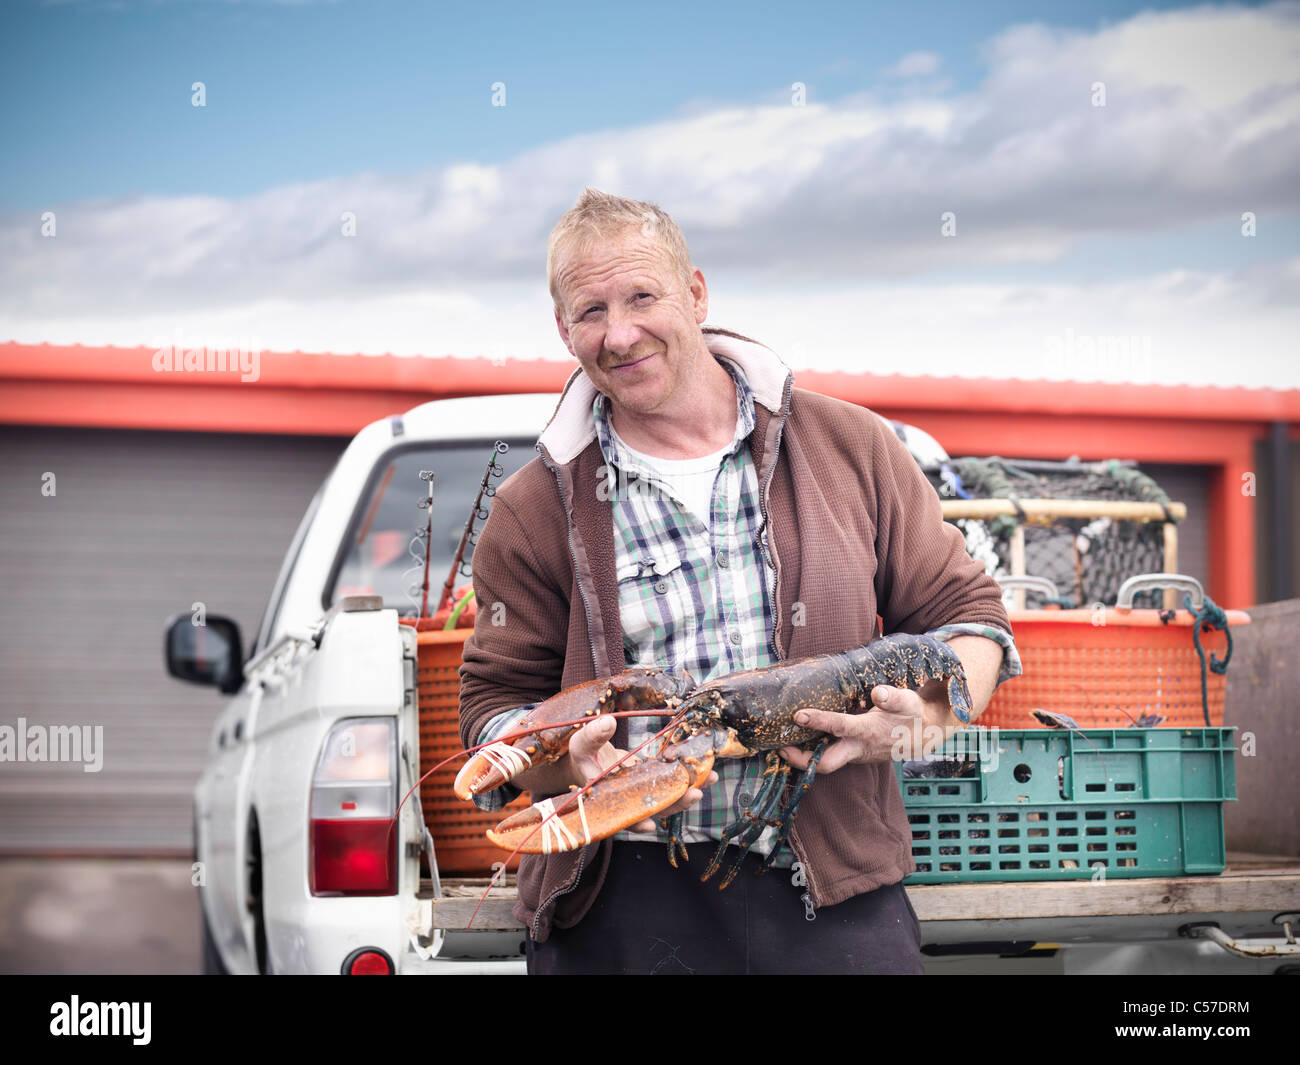 Fisherman holding lobster by truck - Stock Image